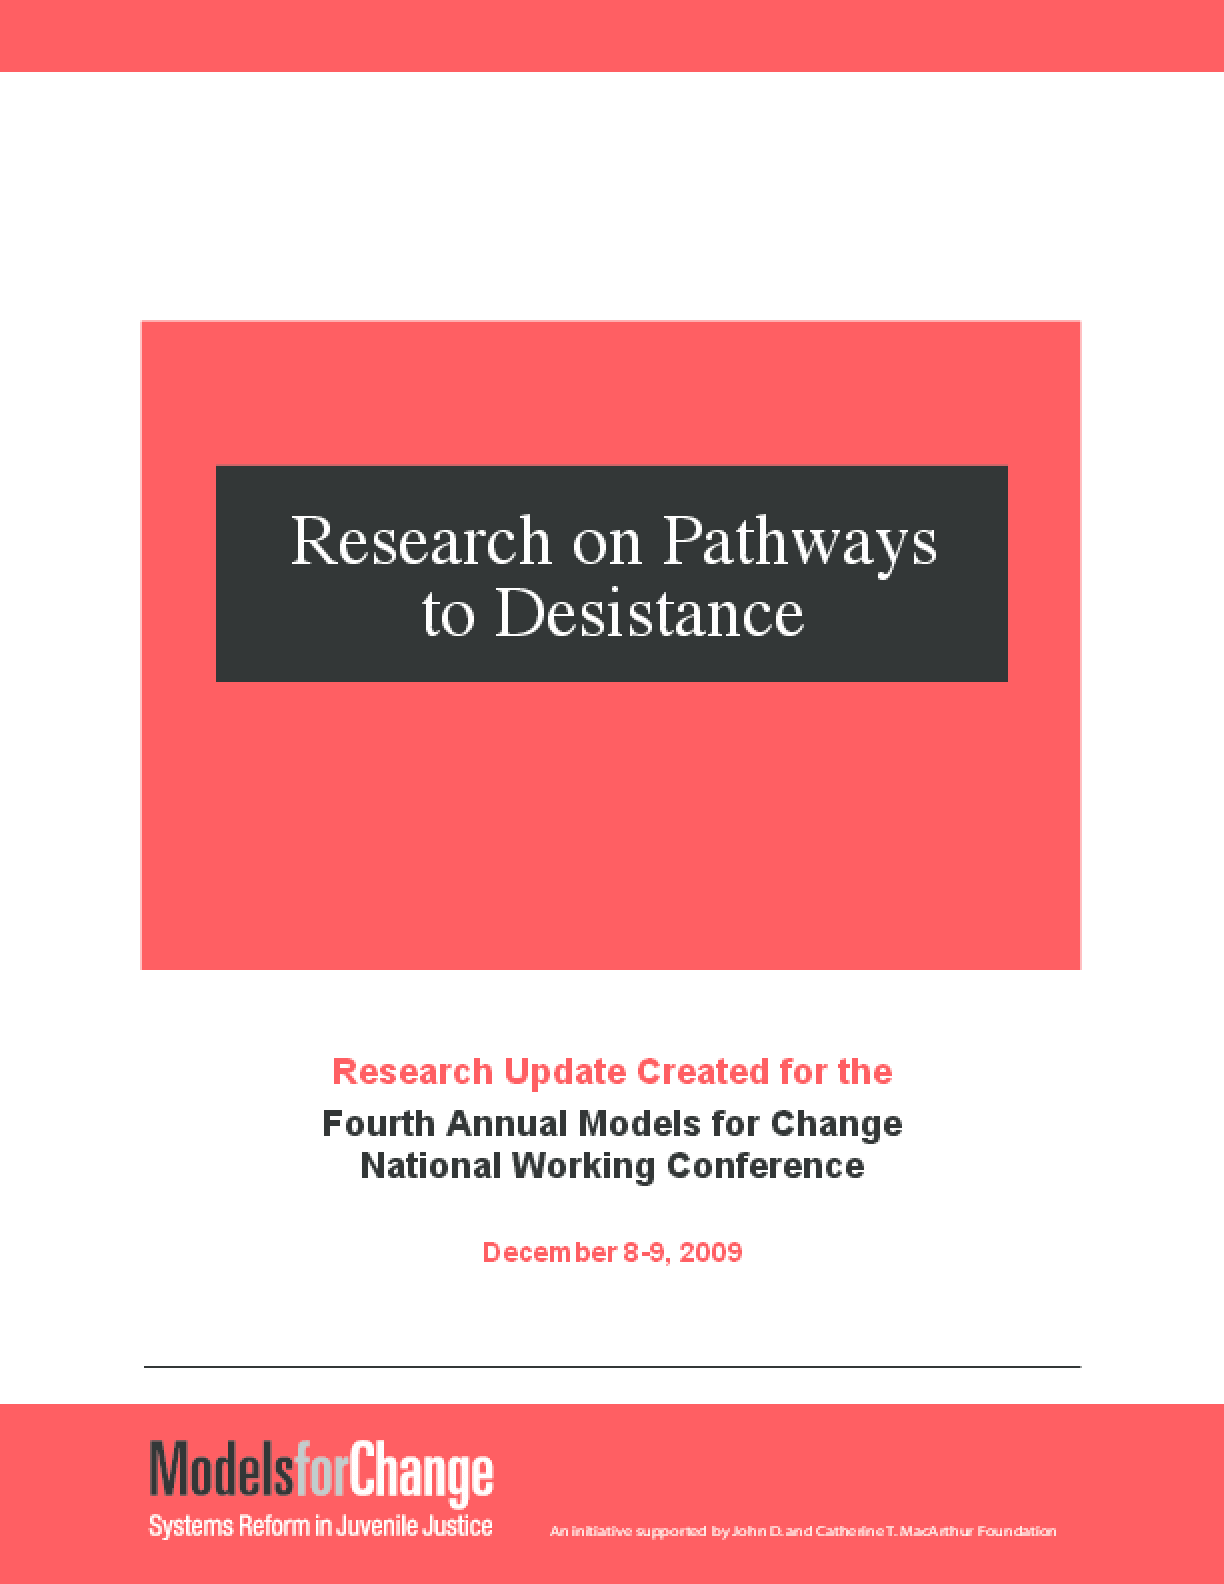 Research on Pathways to Desistance: Research Update Created for the Fourth Annual Models for Change National Working Conference